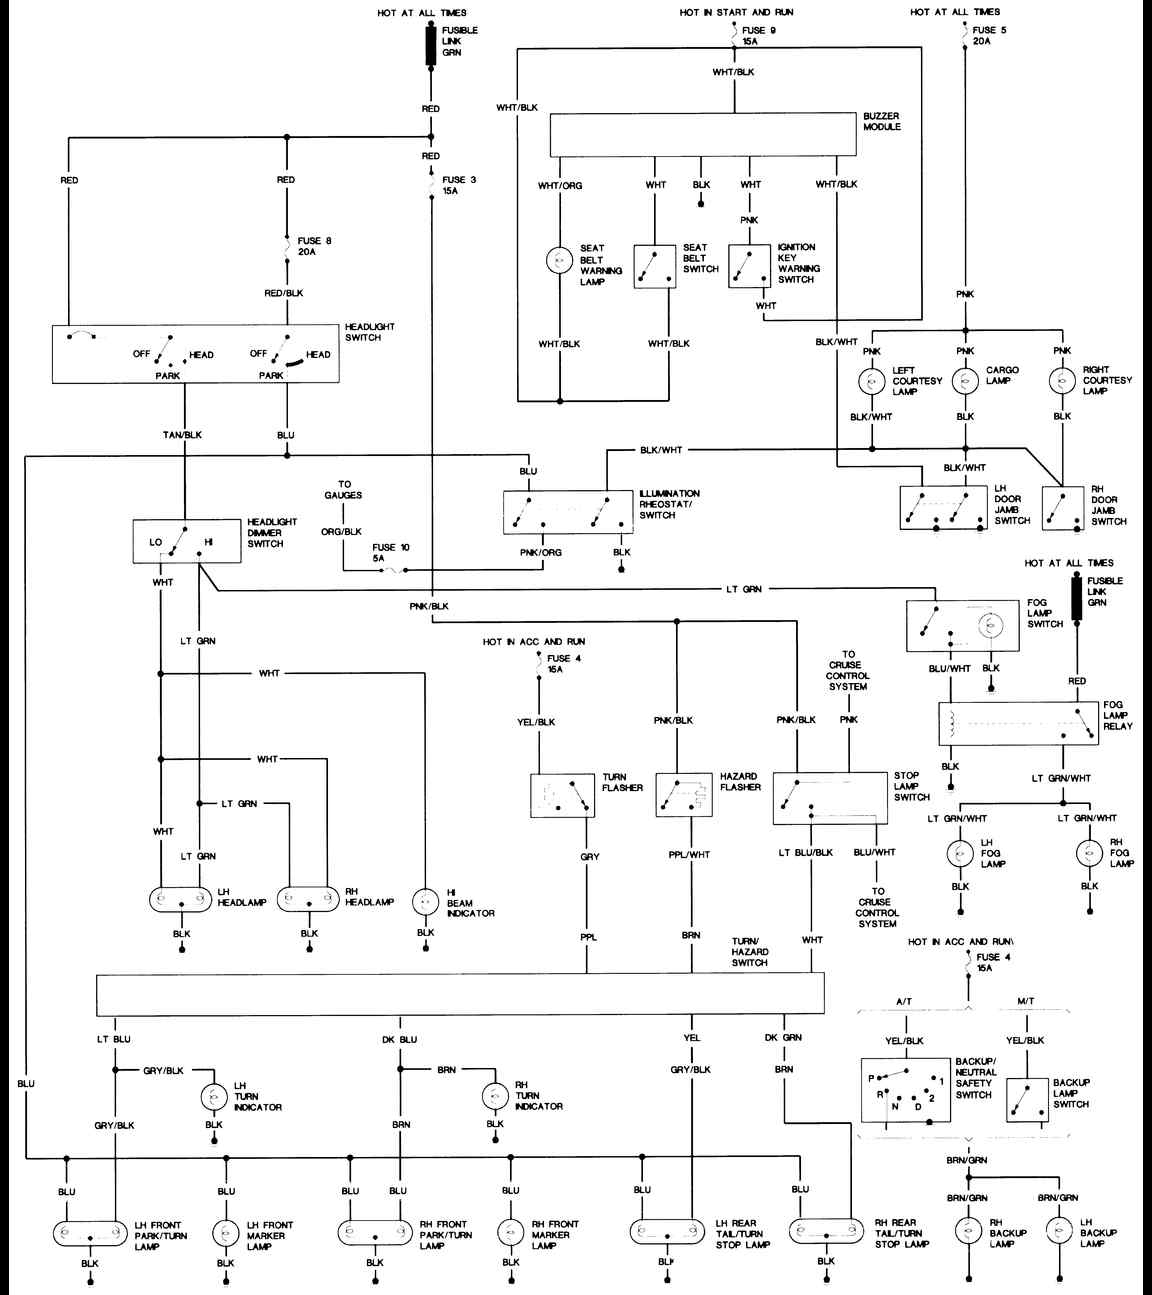 Jeep Yj Dimmer Switch Wiring Diagram Electrical Diagrams 1997 Wrangler Under Hood Help Rh Forum Northeastjeep Org Headlight